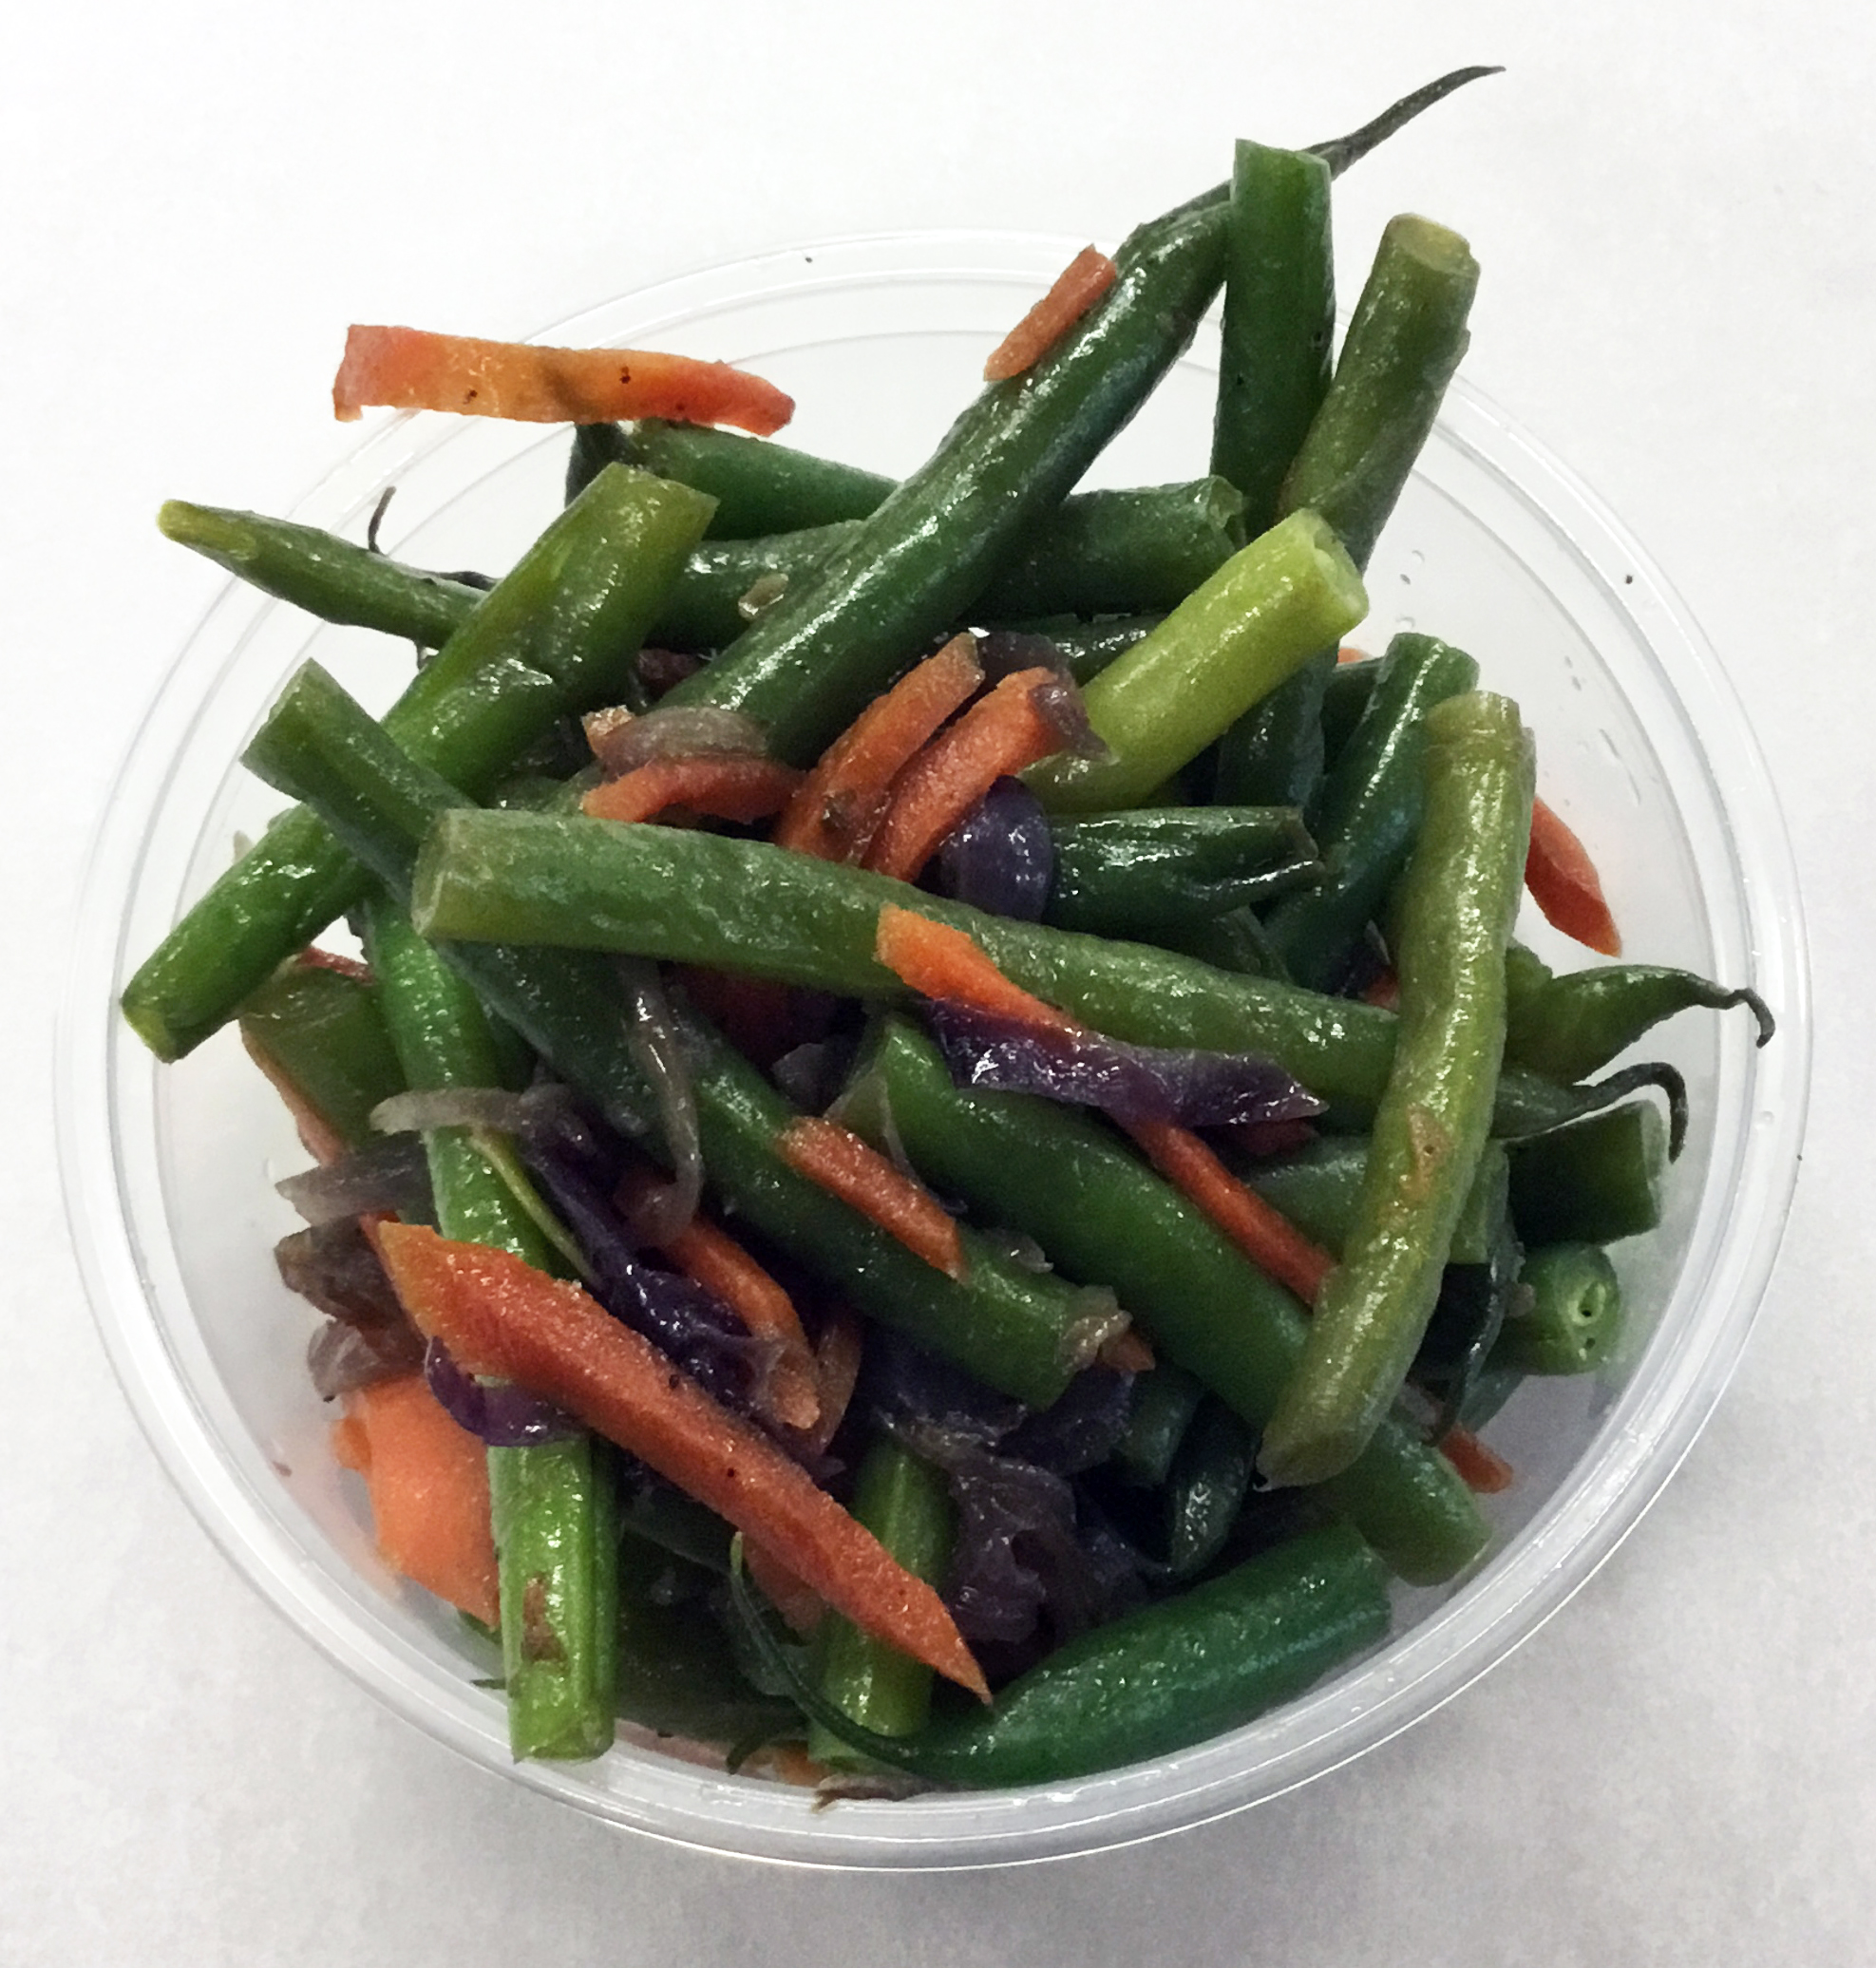 Green beans sauteed with carrot and red onion.